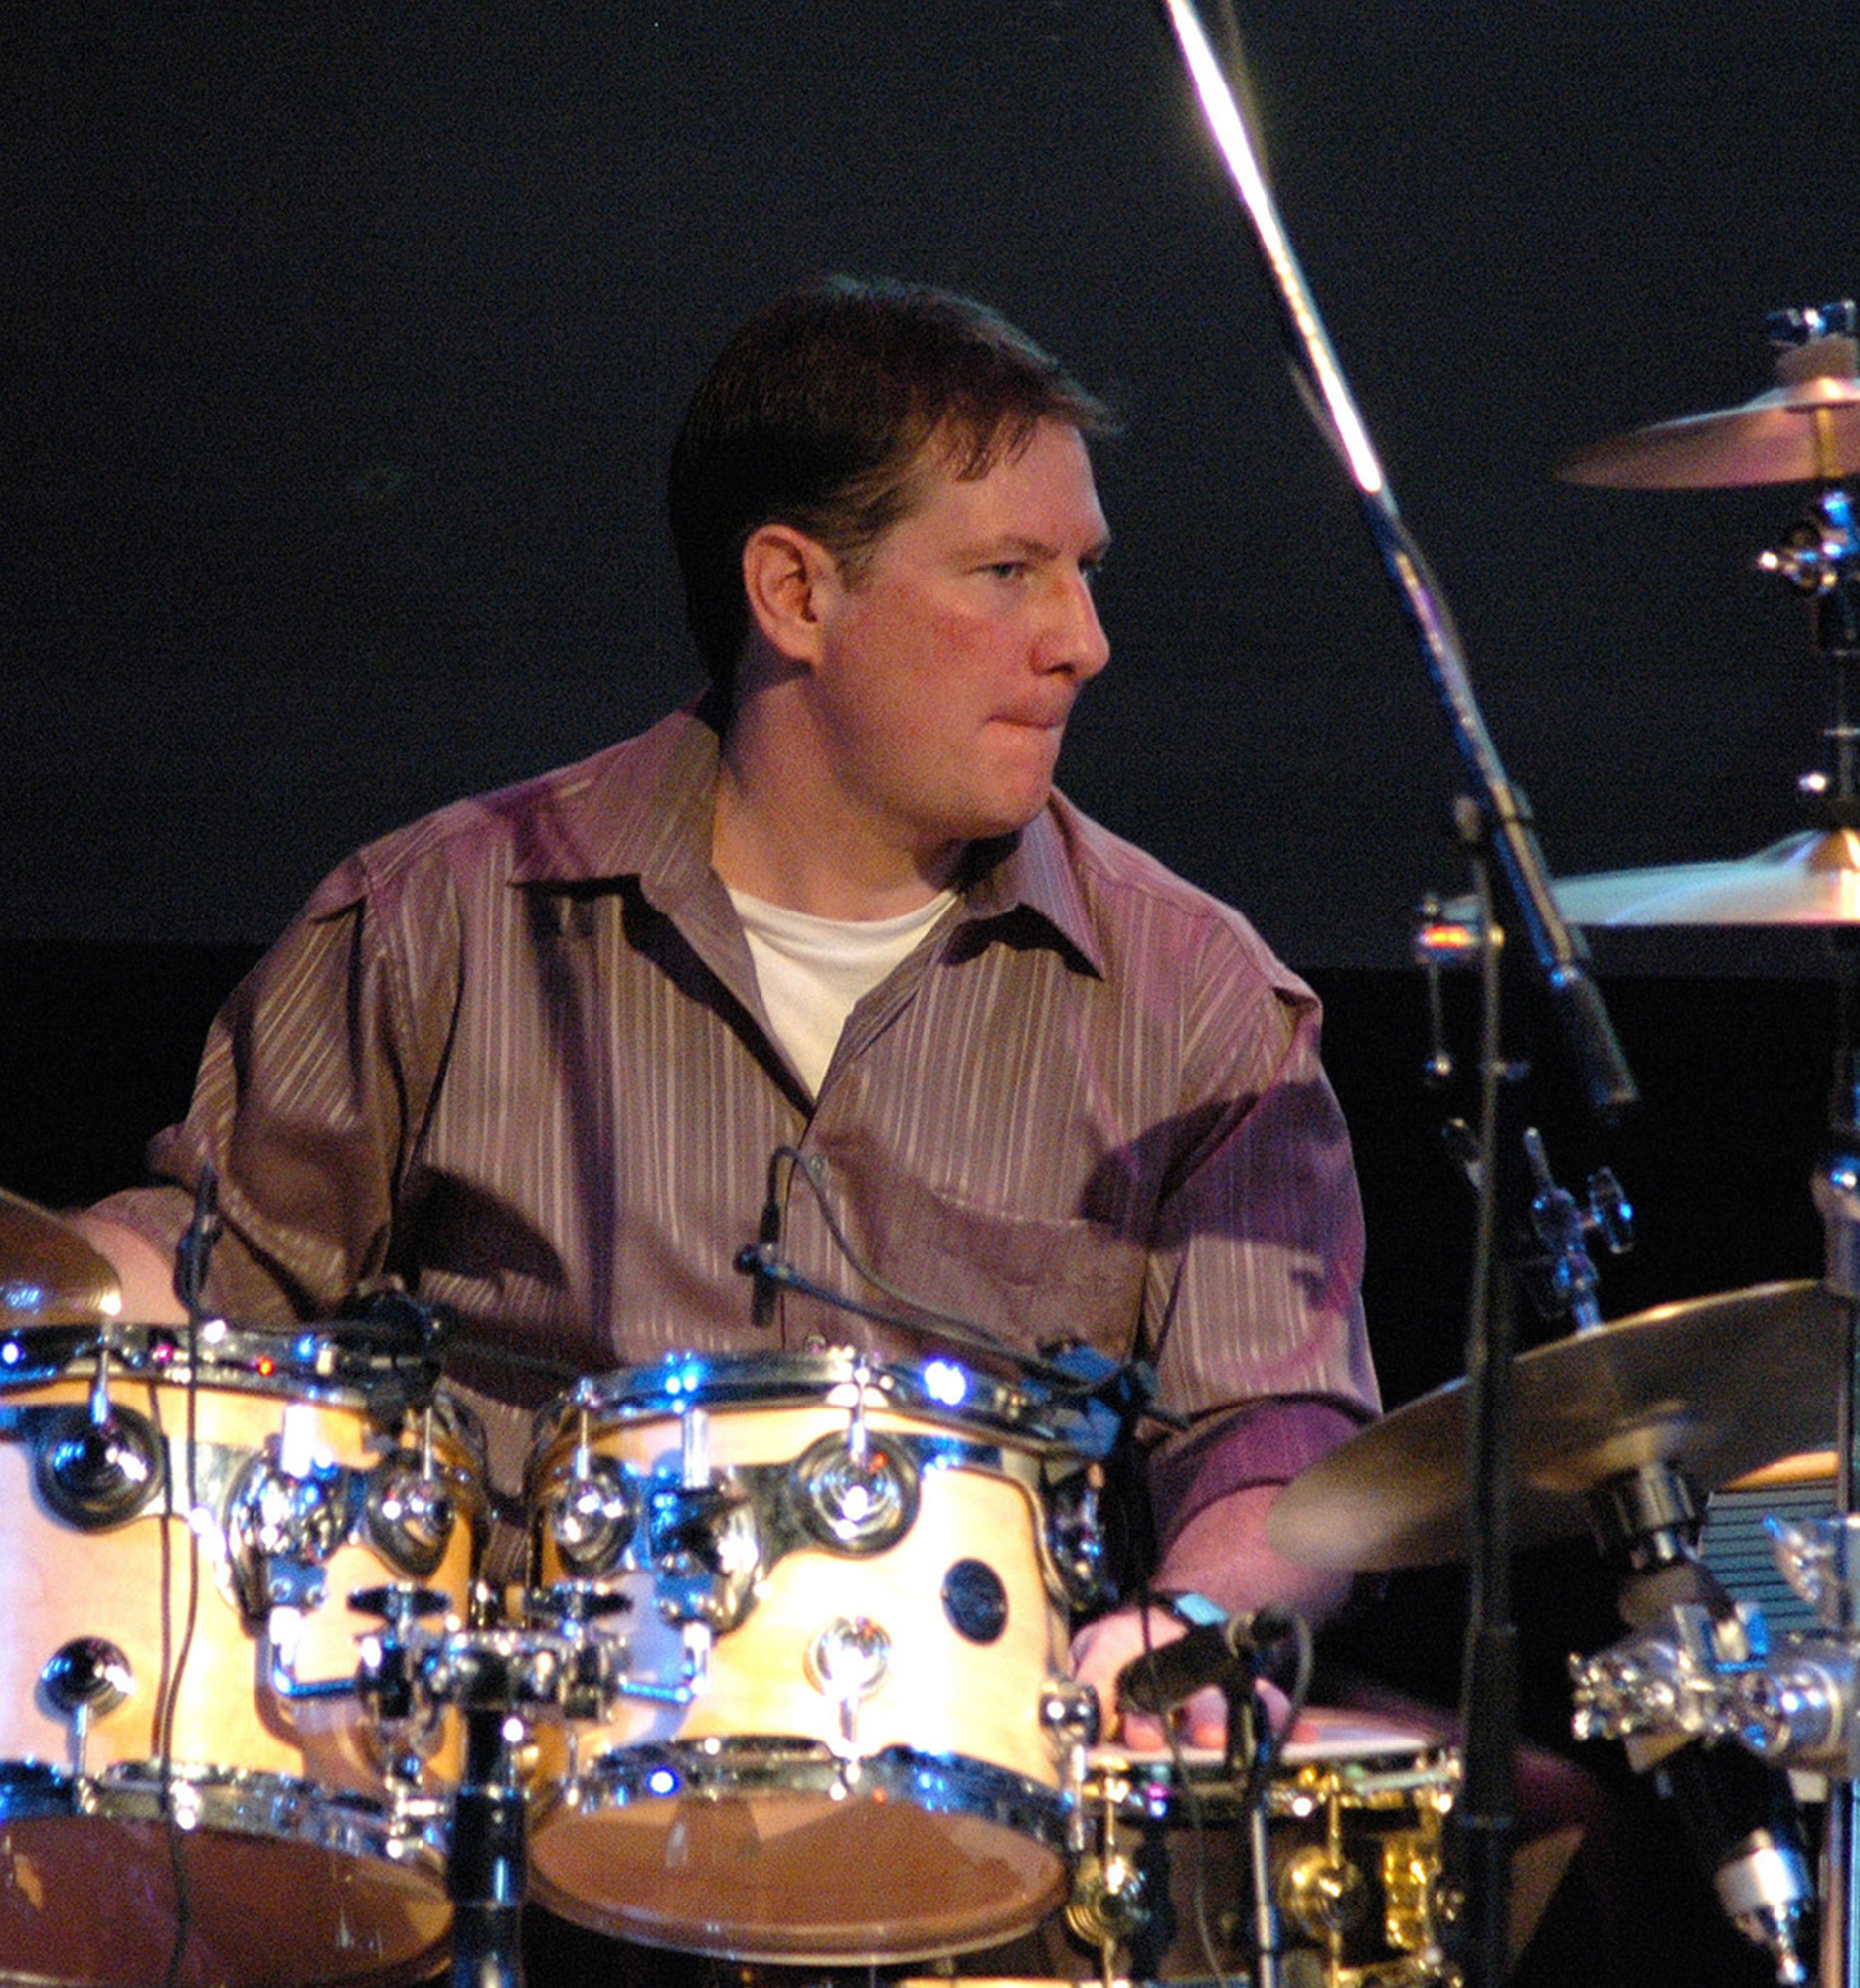 Paul Borrello || Percussion Teaching Artist at Proctors